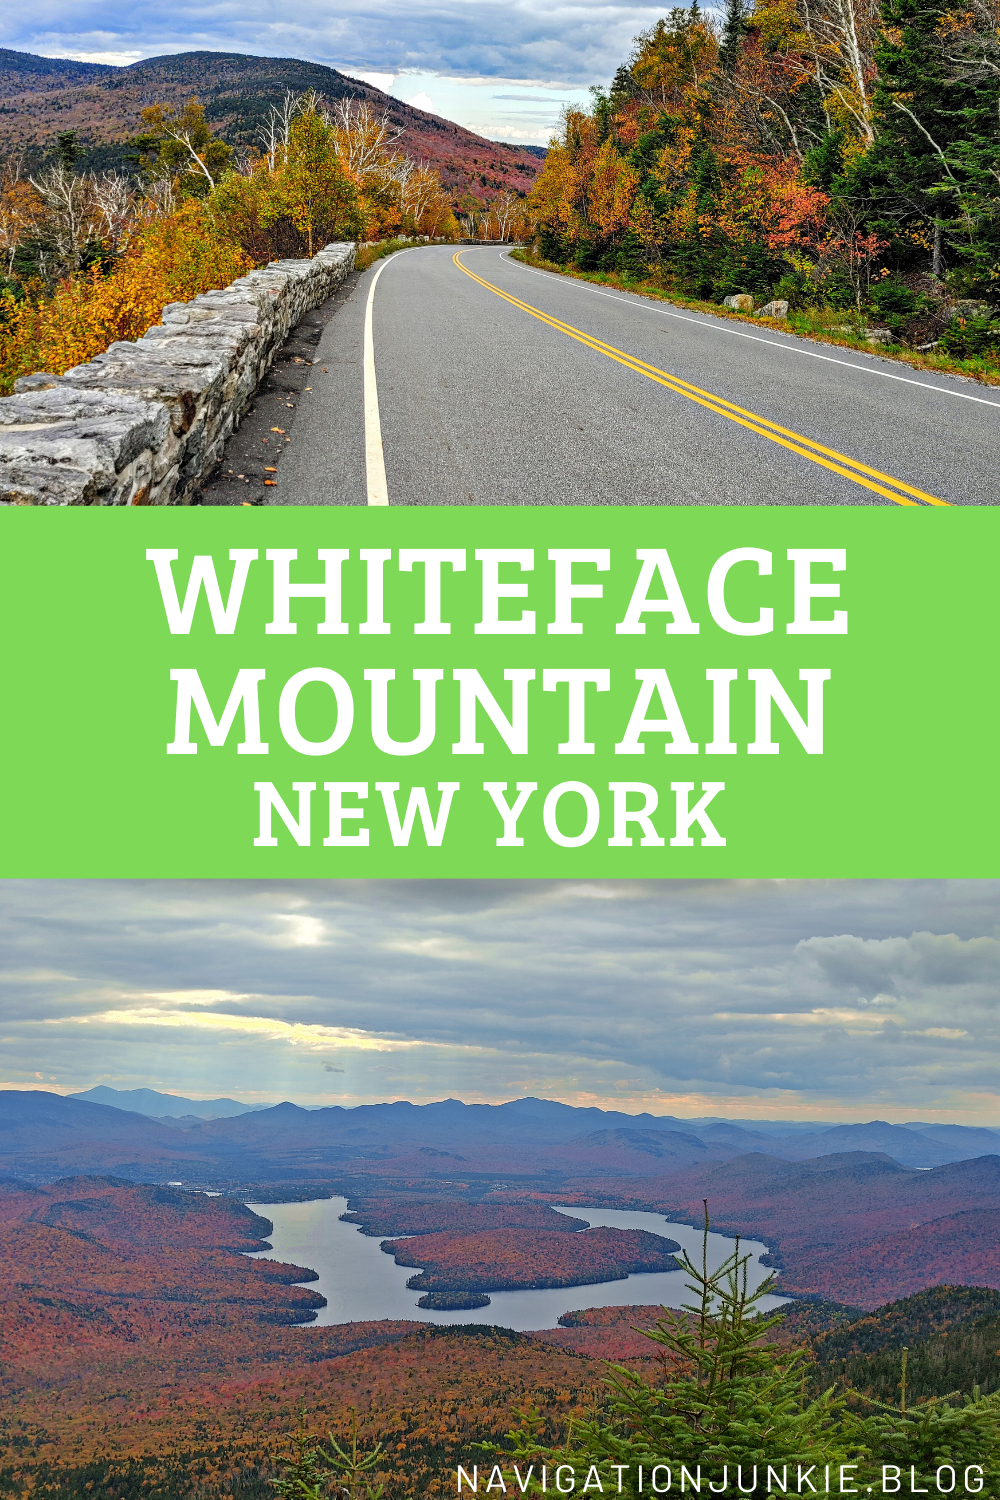 Whiteface Mountain in the Adirondack Mountains of NYS is a popular destination summer, winter, or fall. Explore all the ways there are to see its beauty!